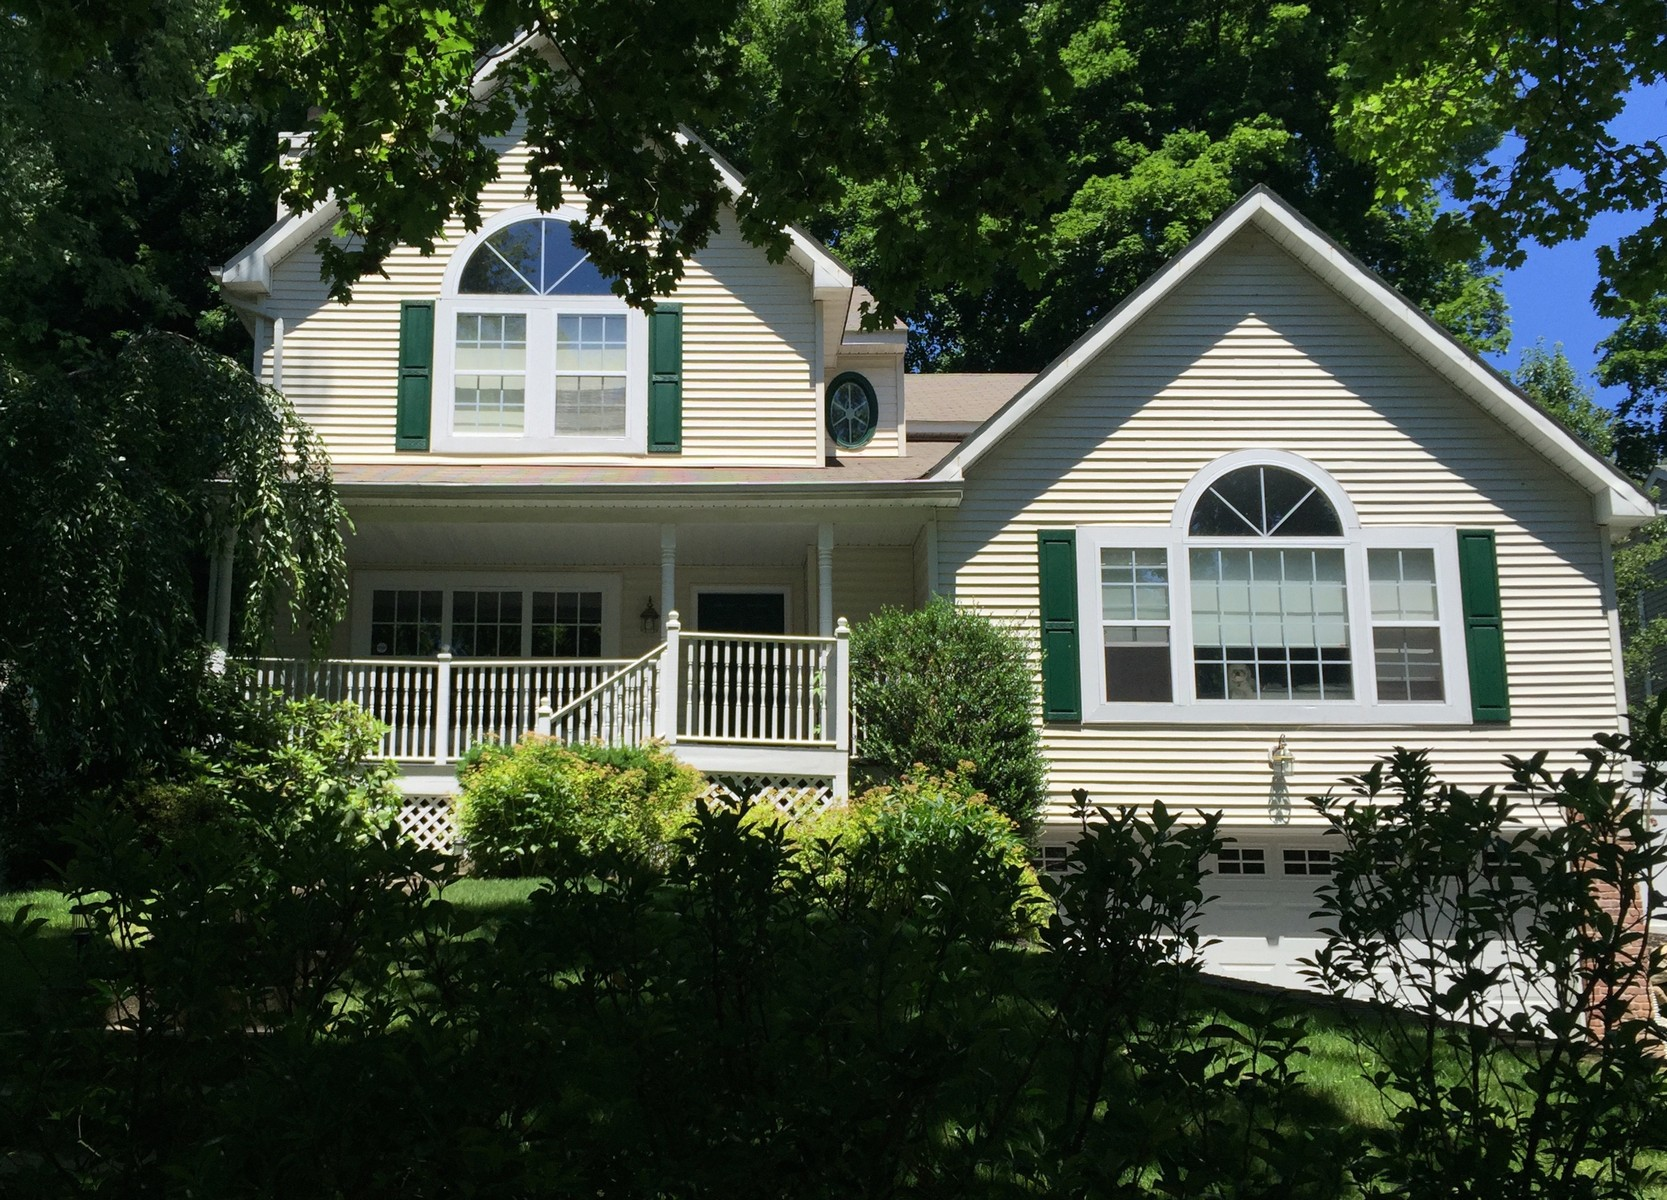 Single Family Home for Sale at Colonial 47 Oyster Bay Rd Locust Valley, New York 11560 United States